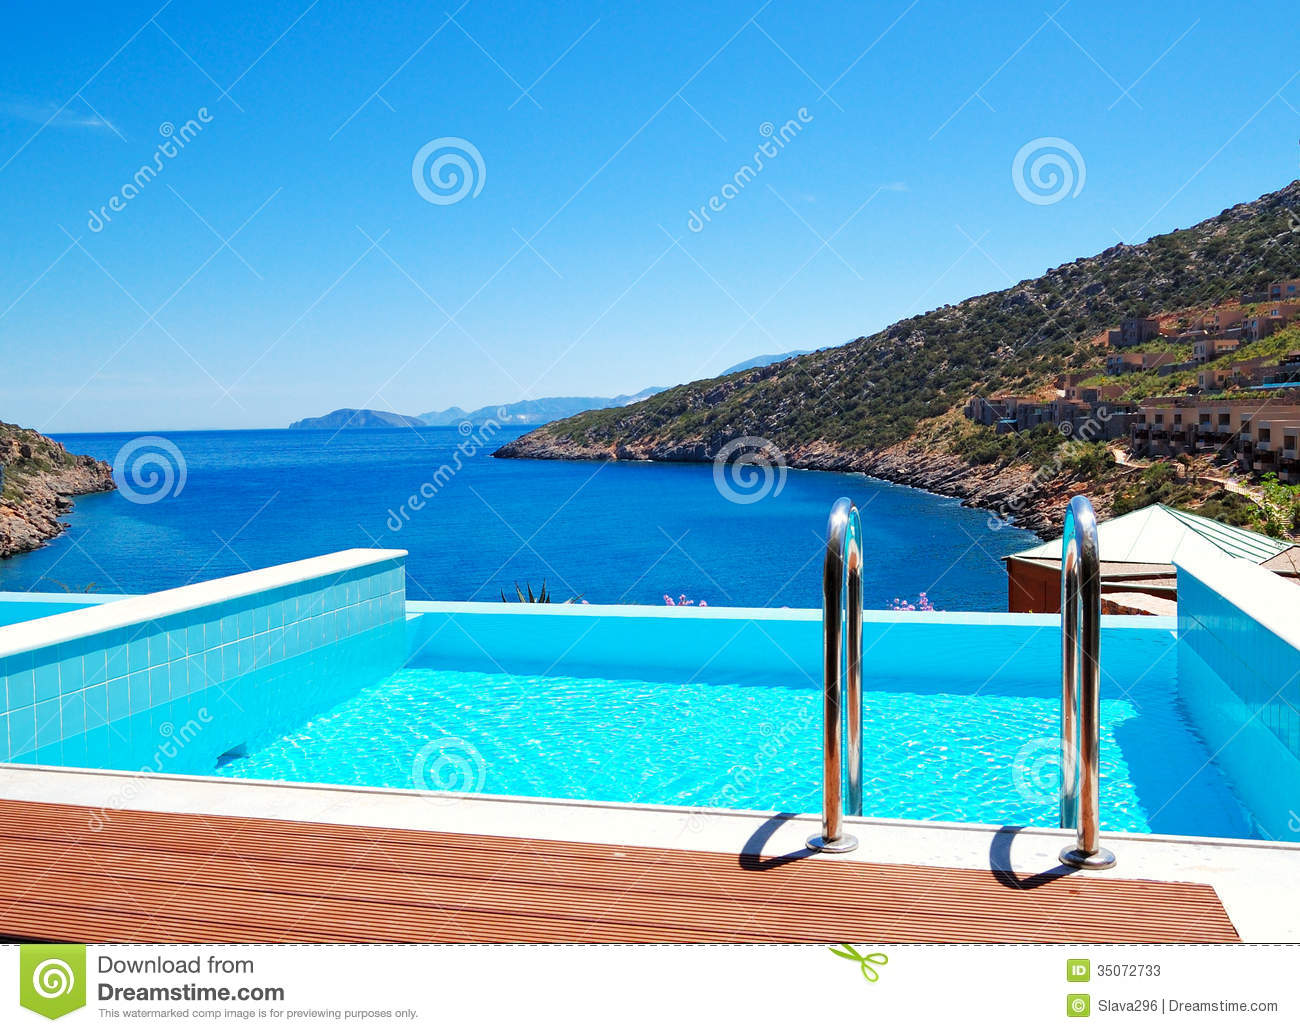 The Sea View Swimming Pool At The Luxury Villa Stock Photos - Image ...